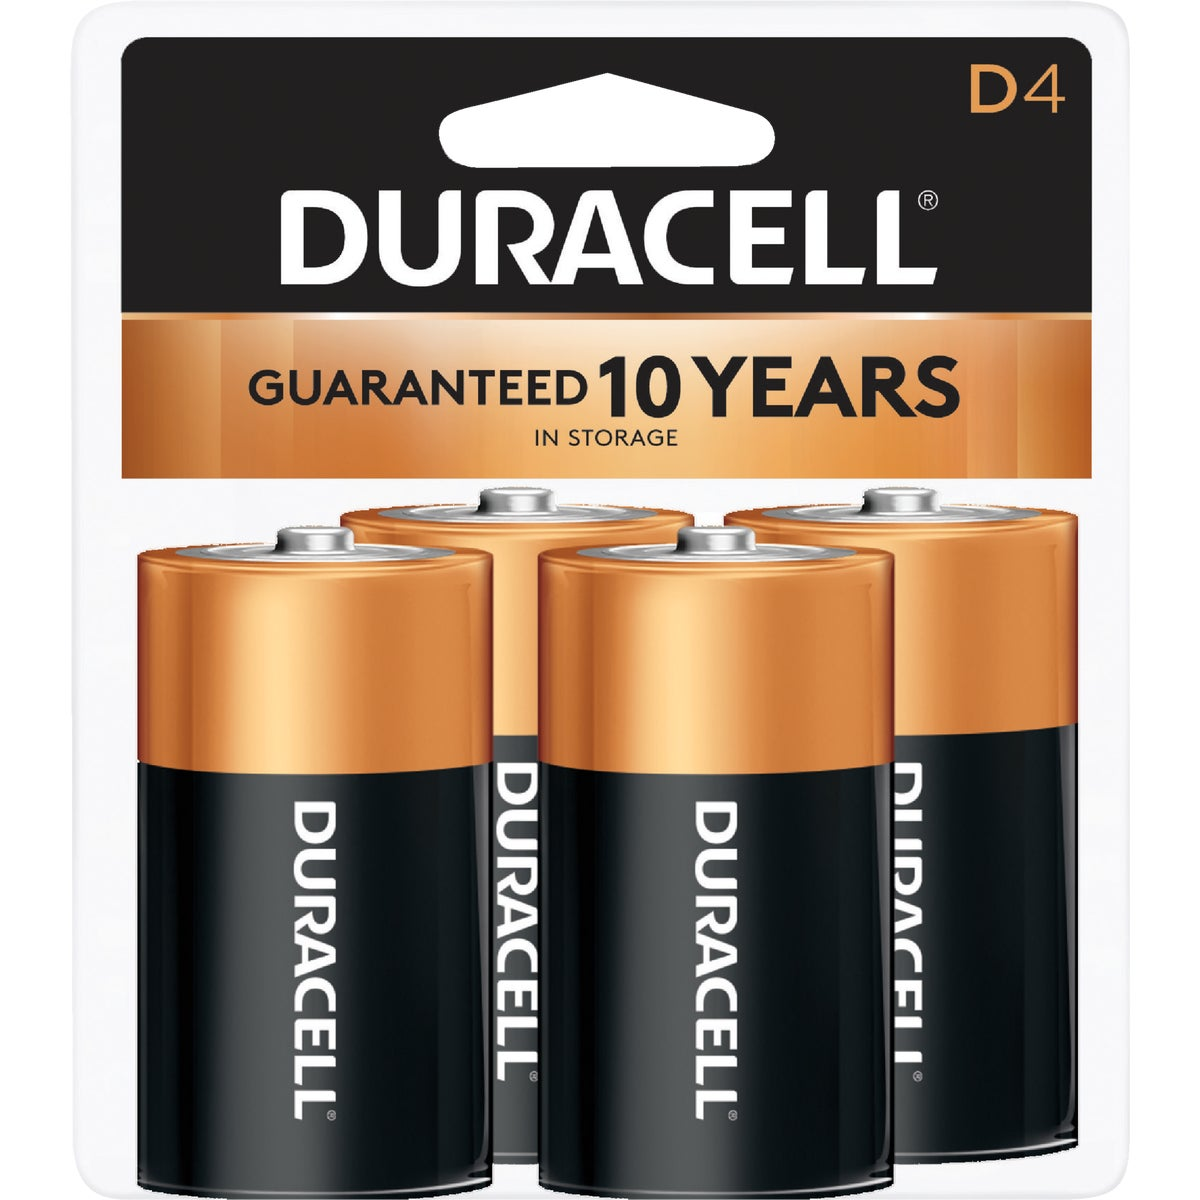 4PK D ALKALINE BATTERY - 03361 by P & G  Duracell